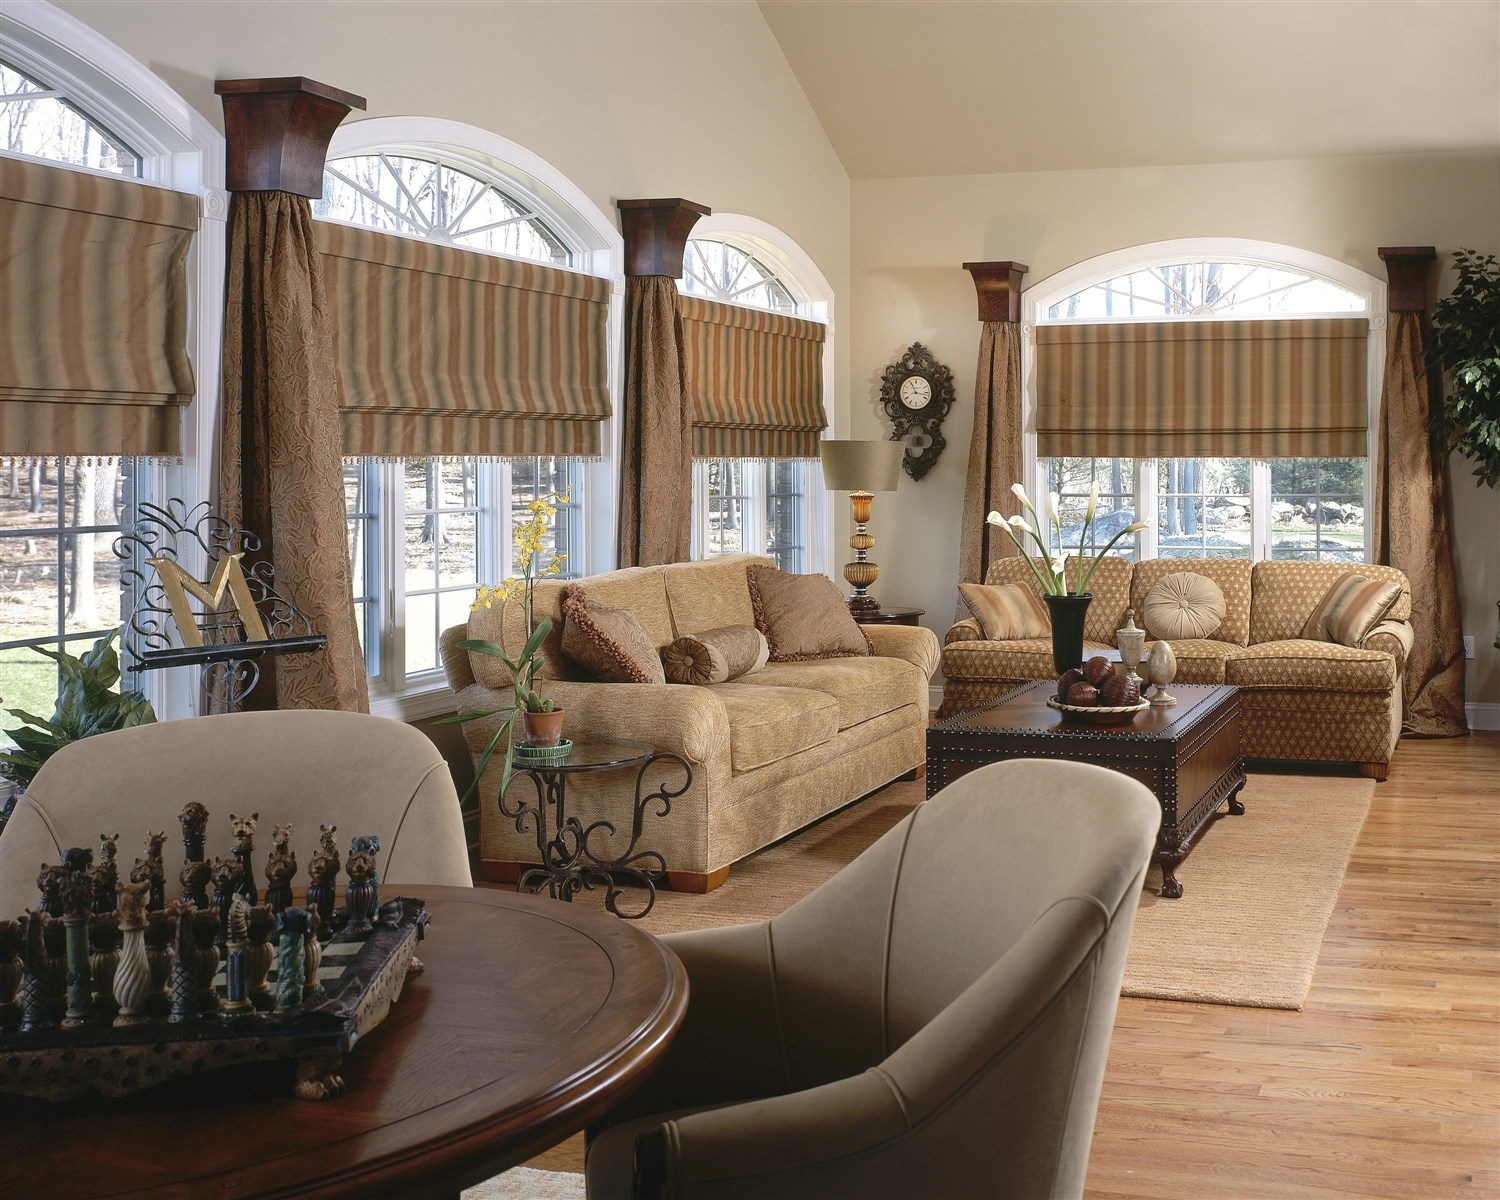 Living room interior design with two big couches